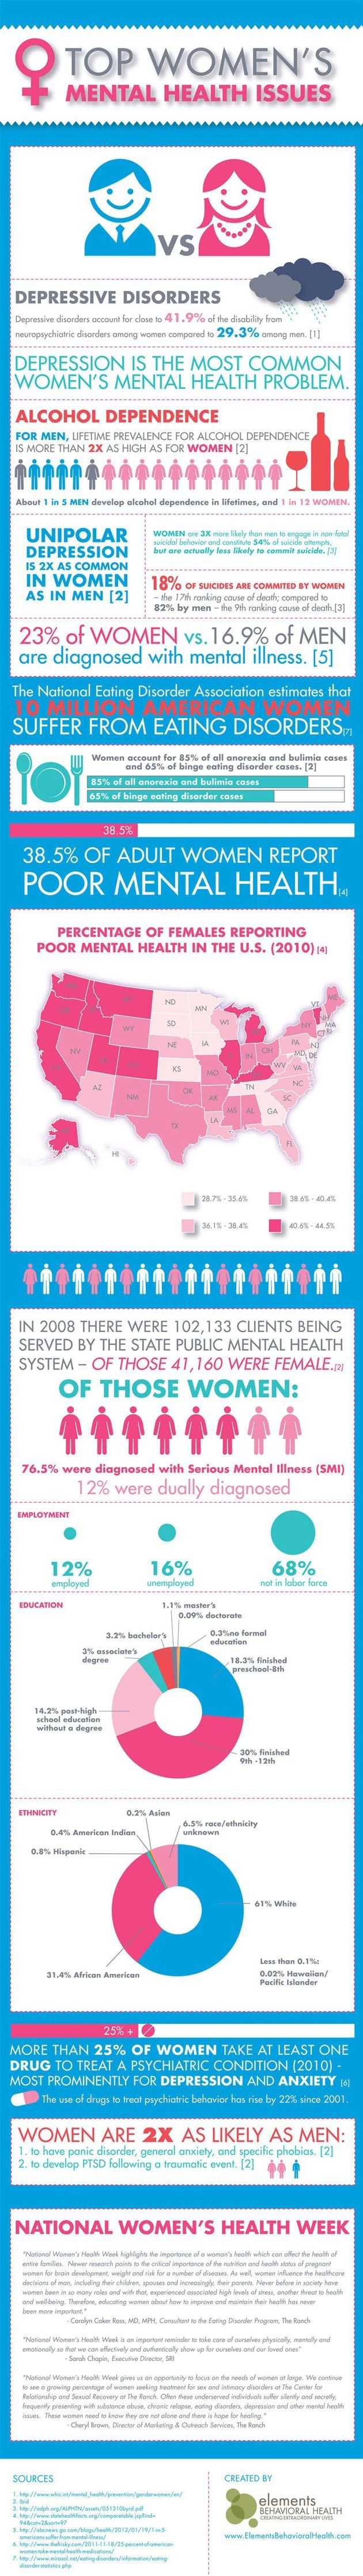 Top Women's Mental Health Issues Infographic